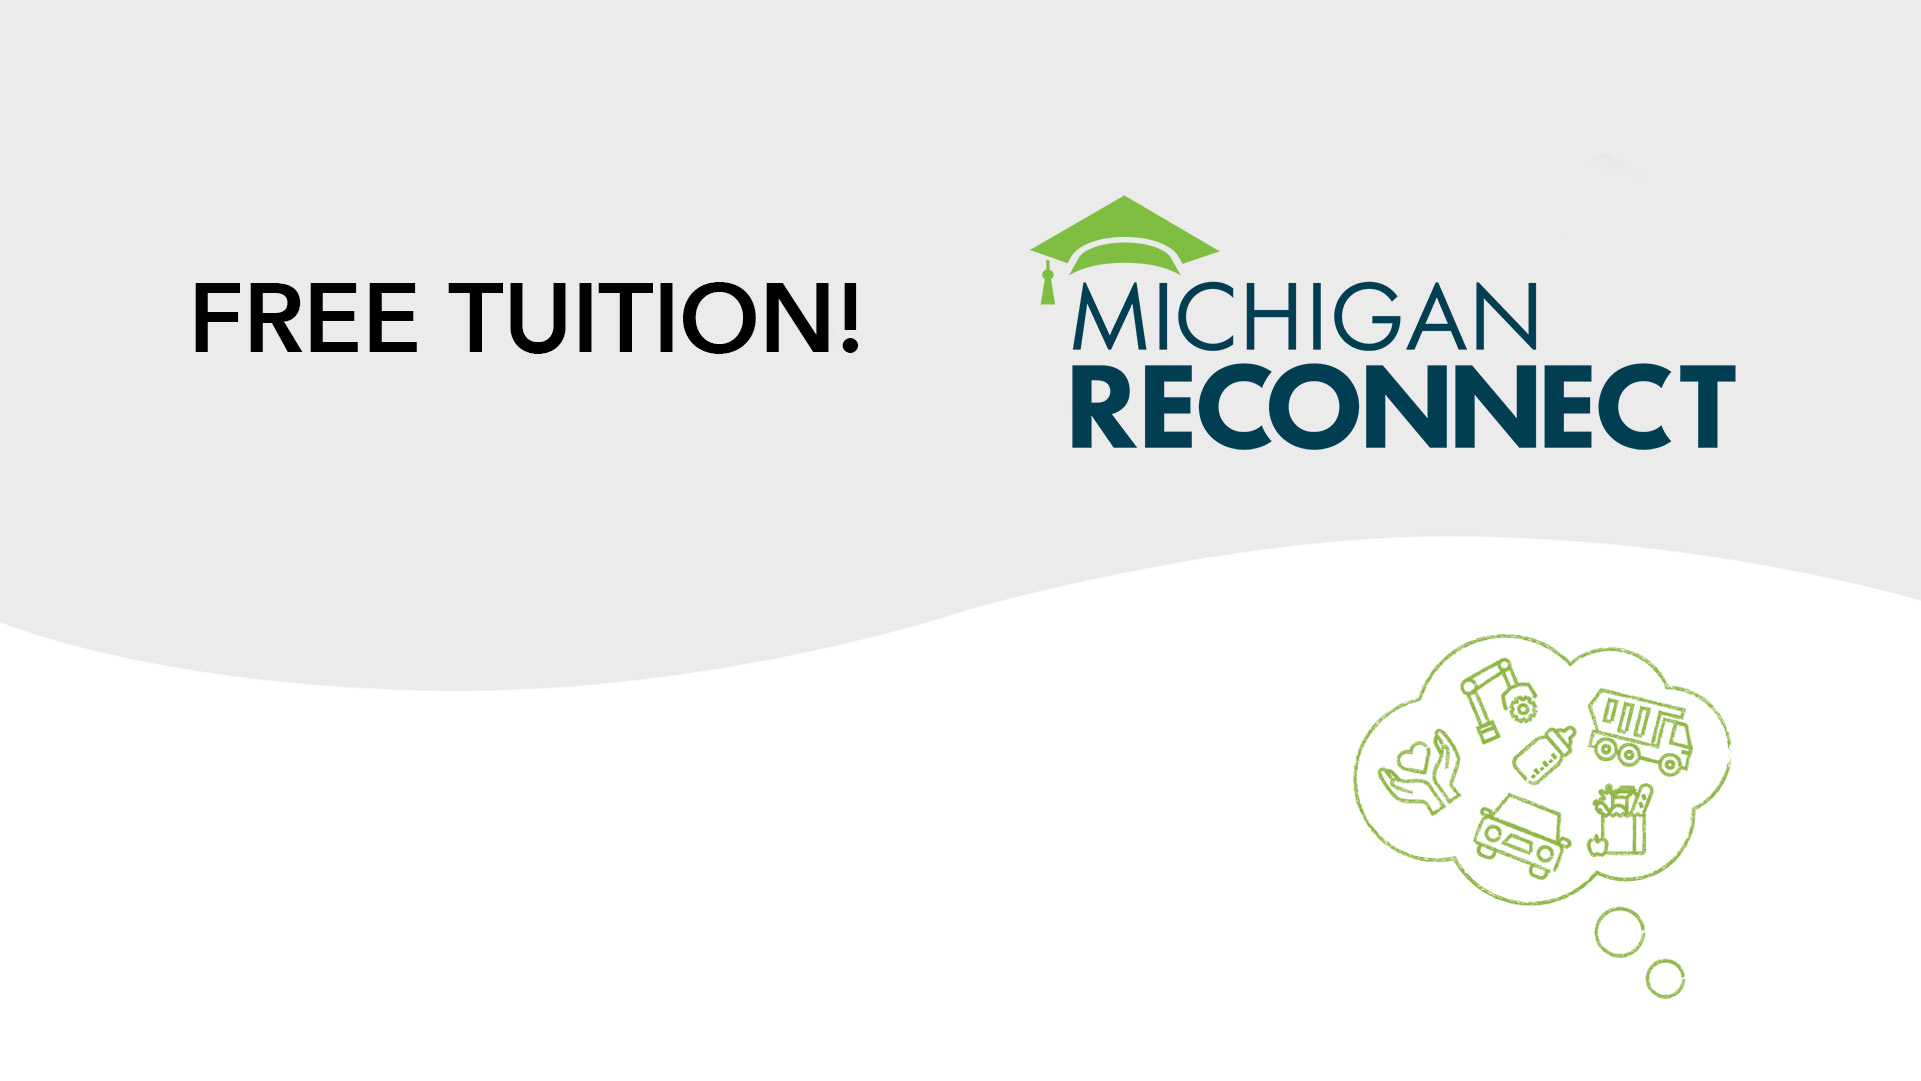 Michigan Reconnect Graphic and the words Free Tuition